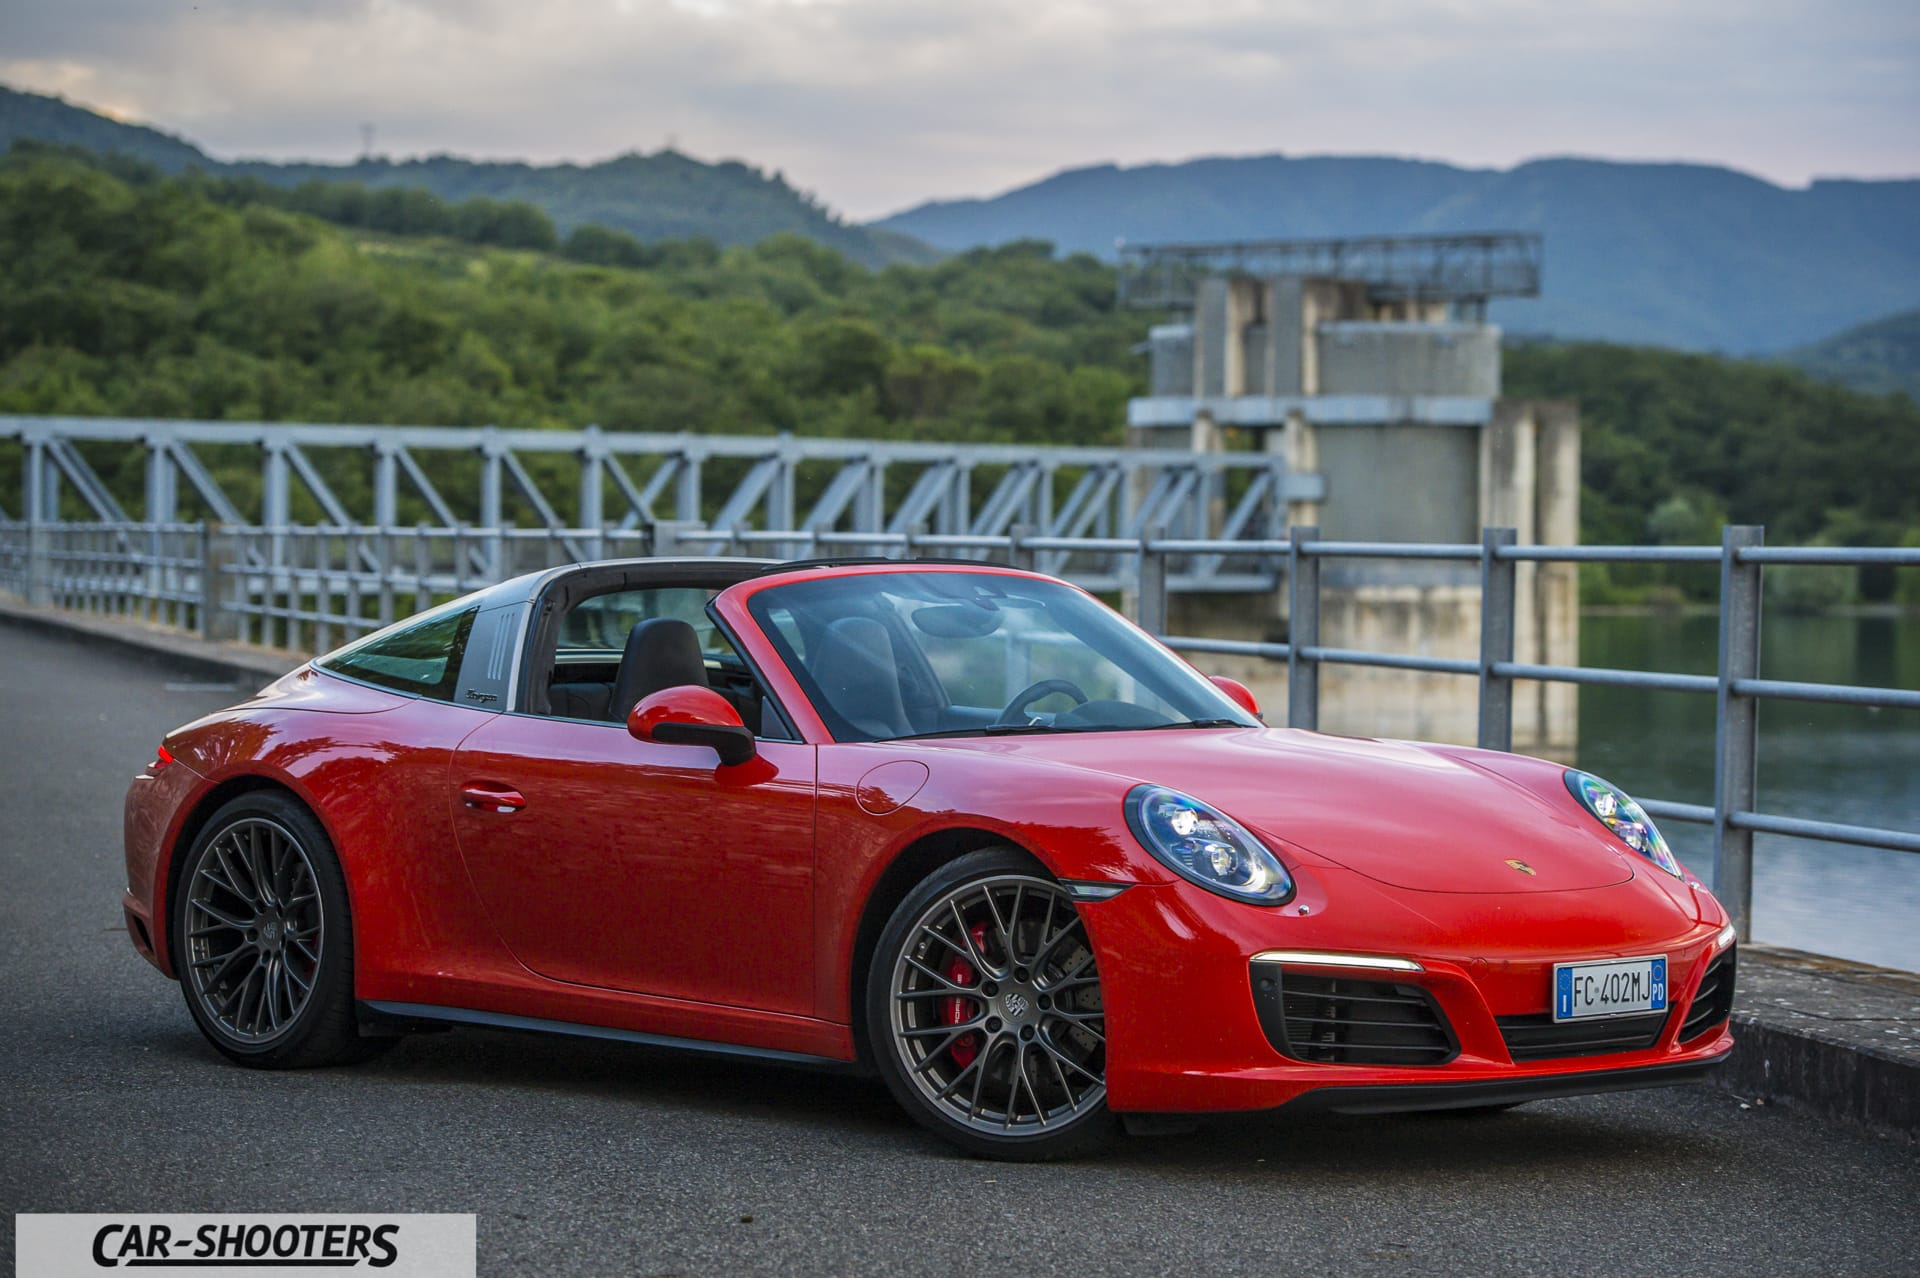 Porsche 911 Targa 4s The Everyday Supercar